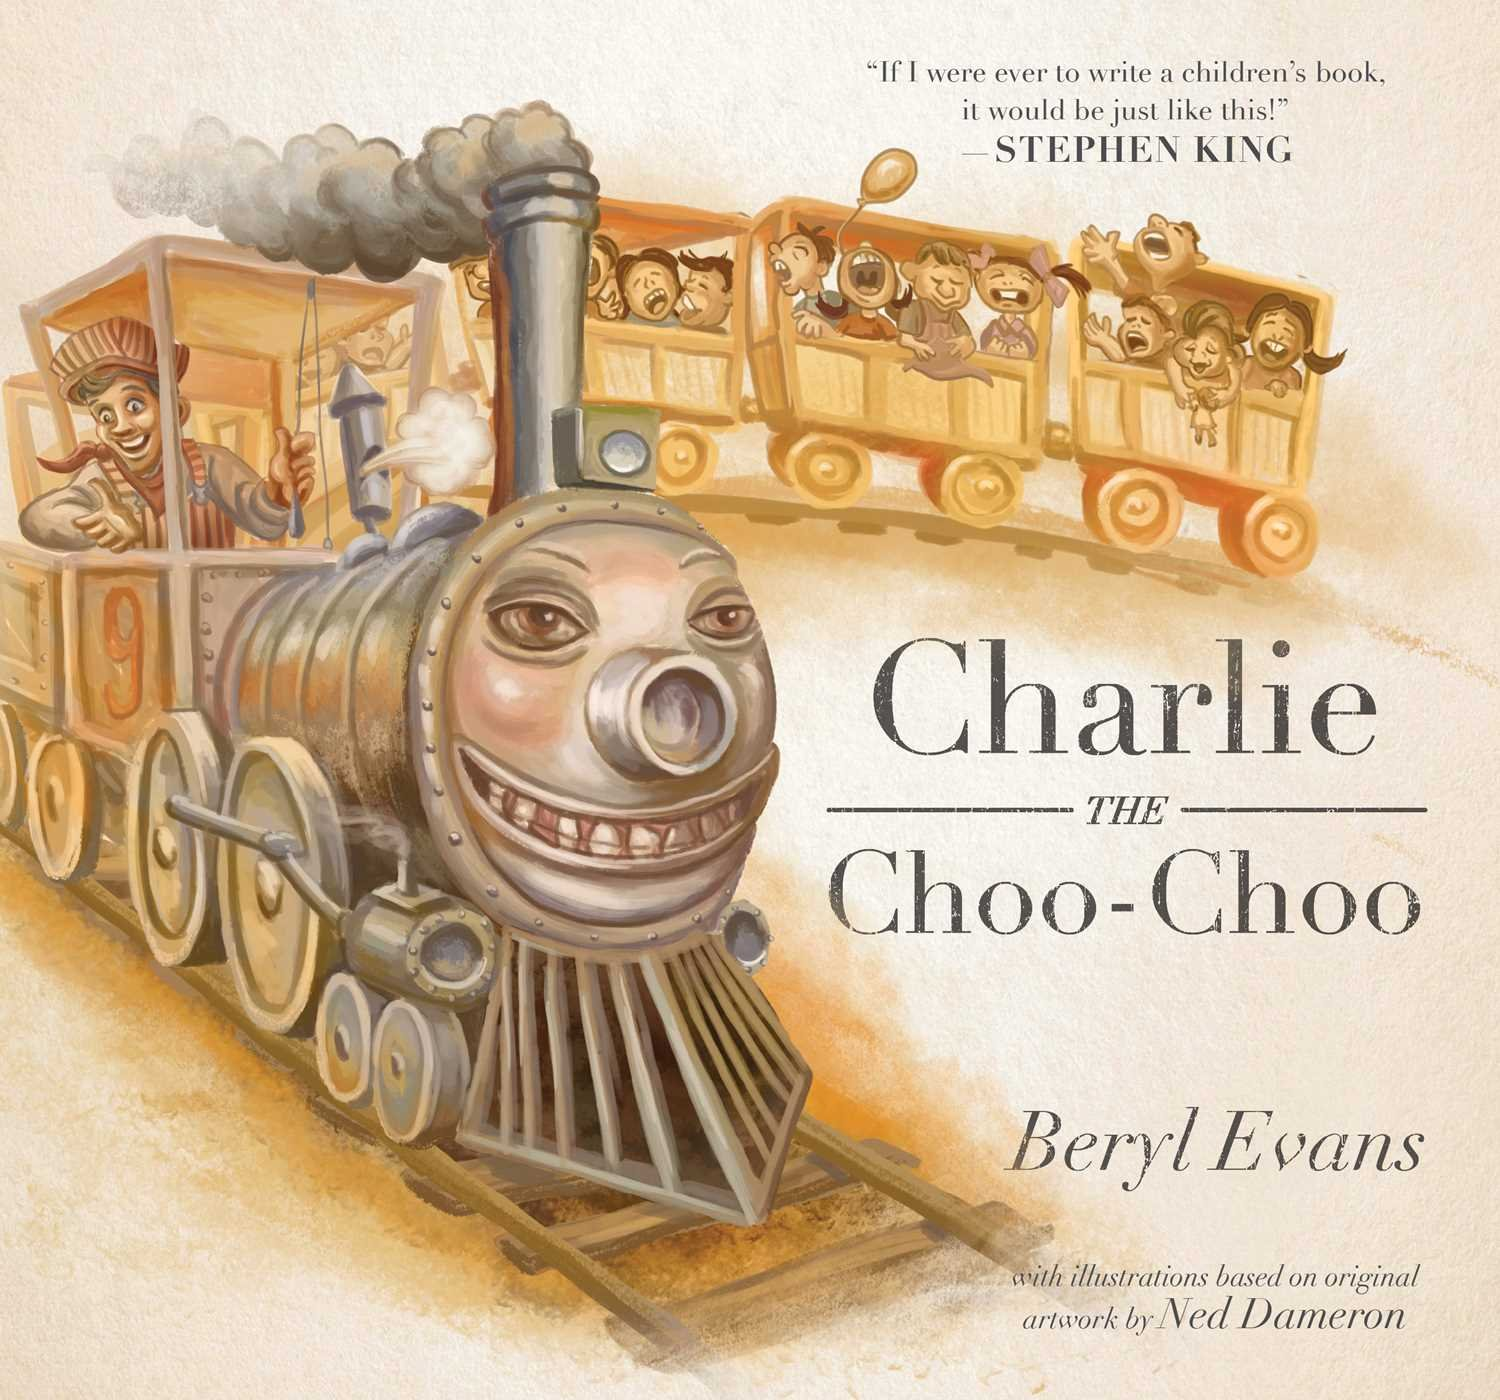 Friday Reads: Charlie the Choo-Choo